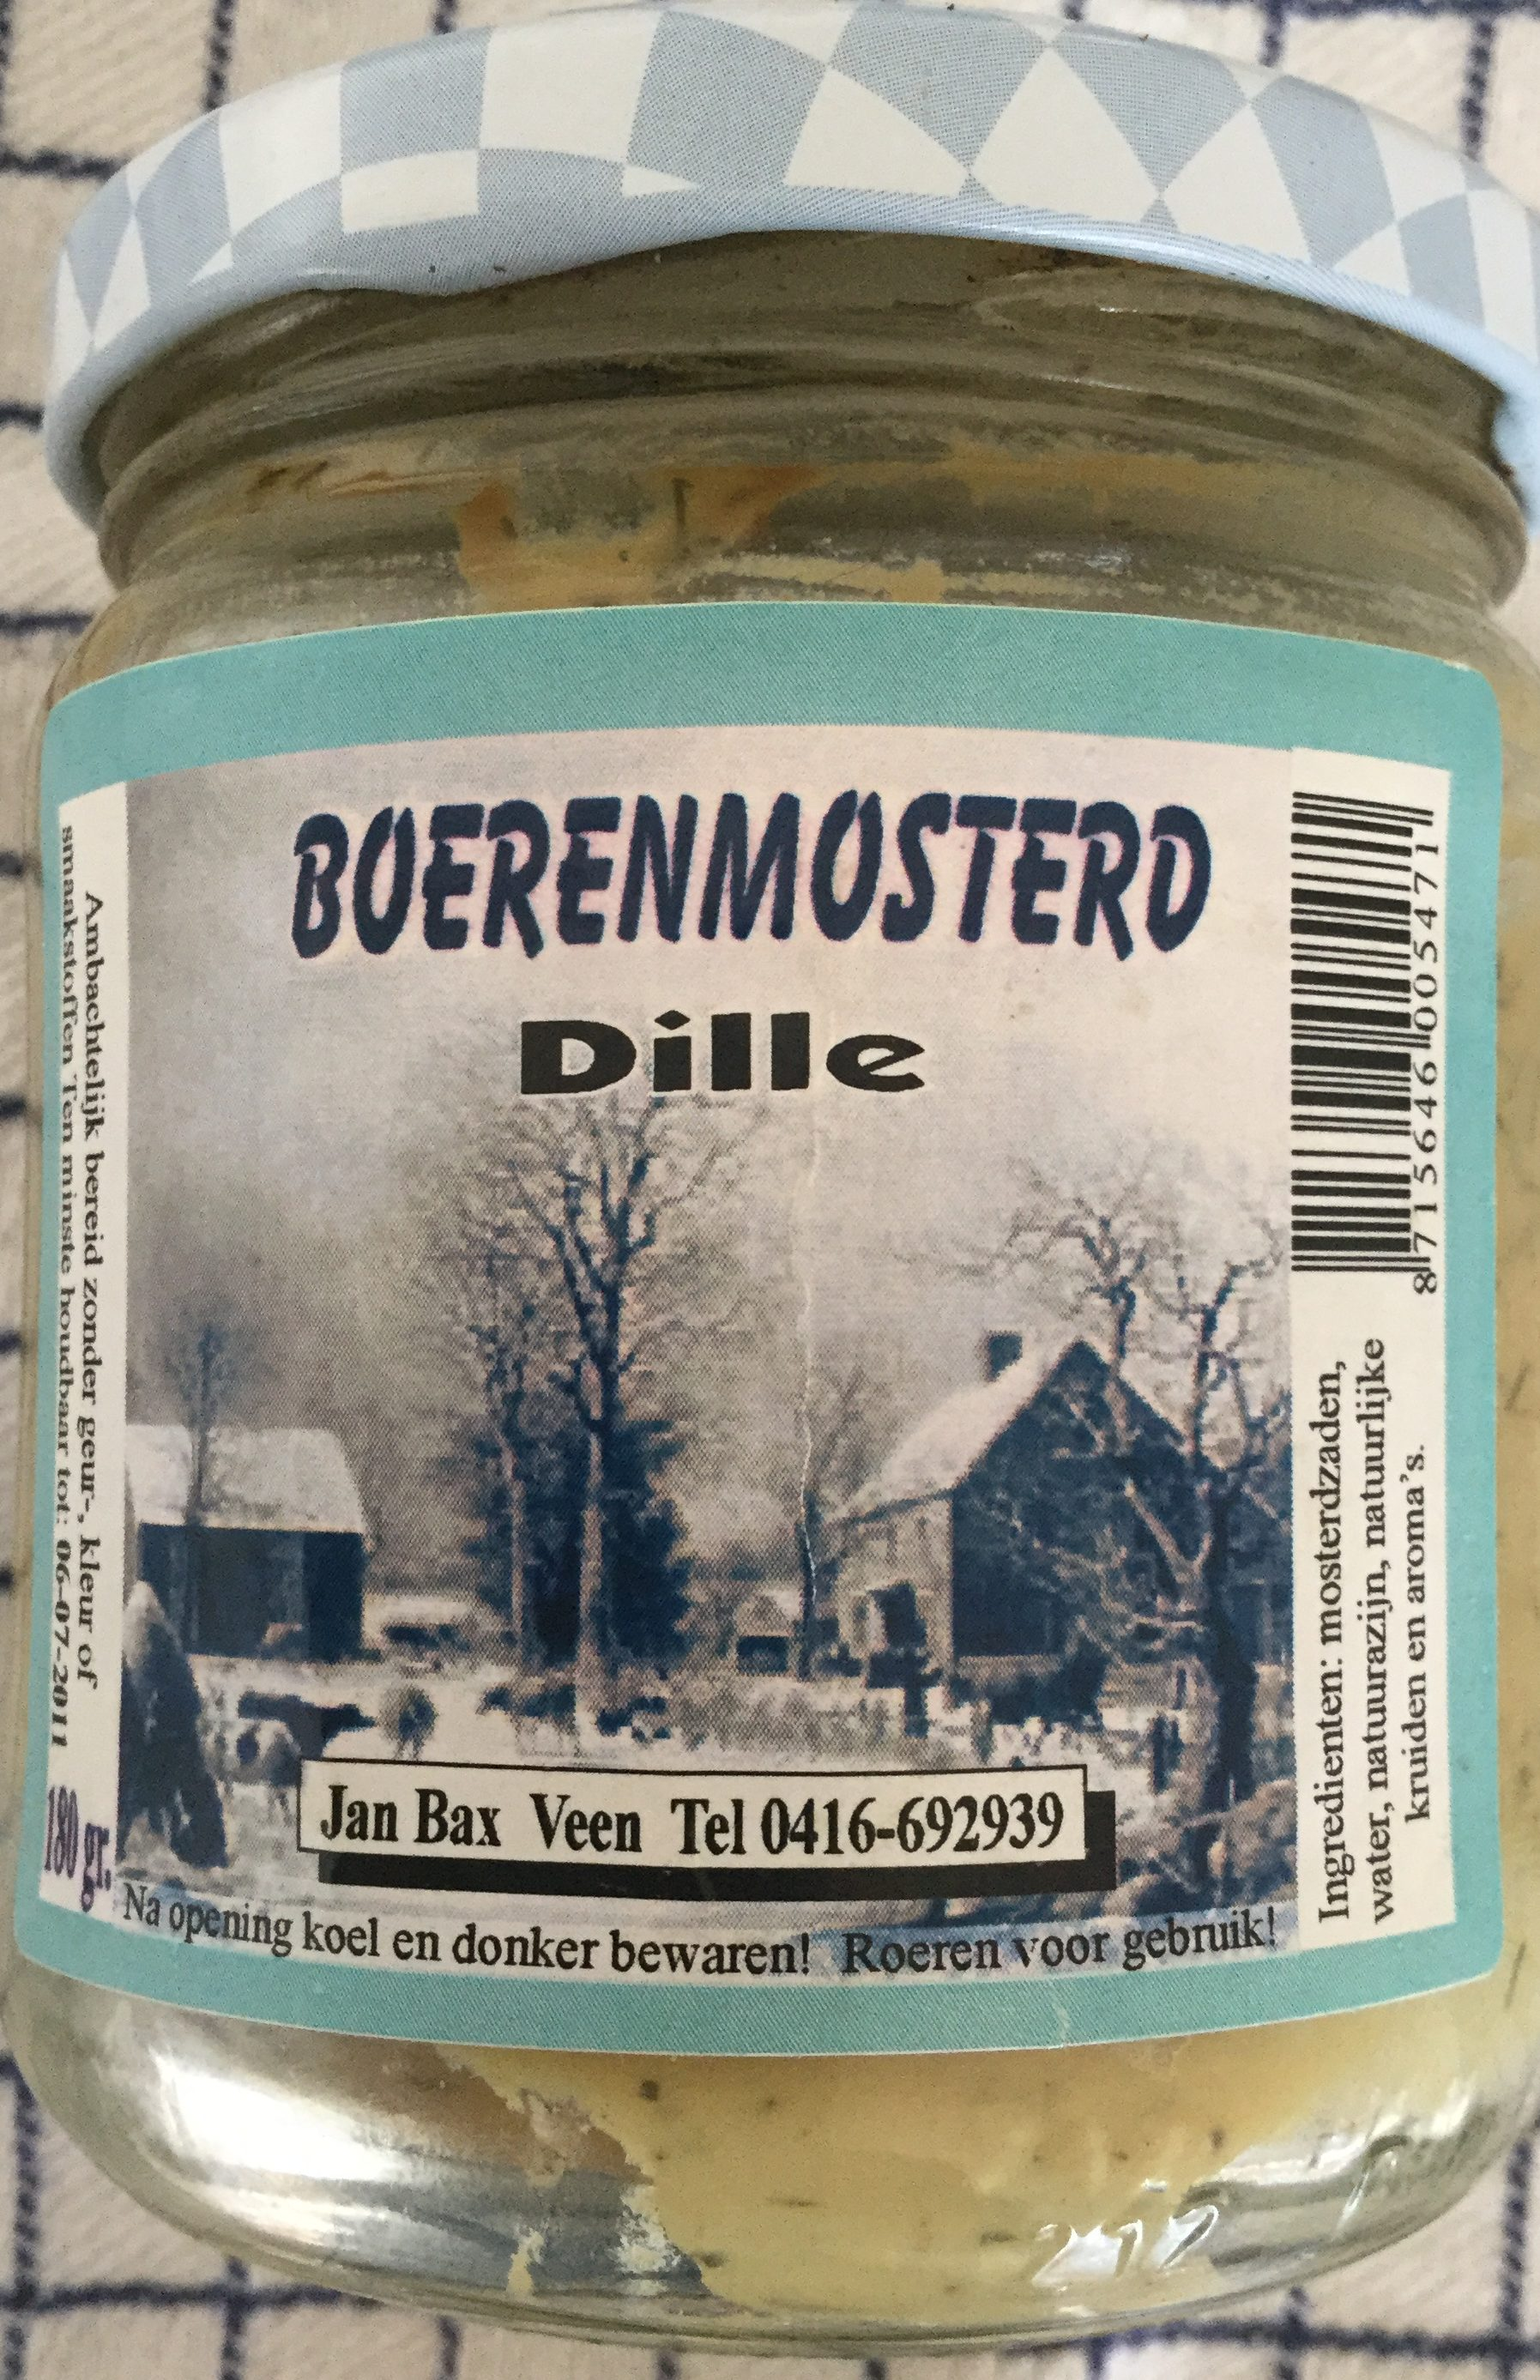 Boerenmosterd dille - Product